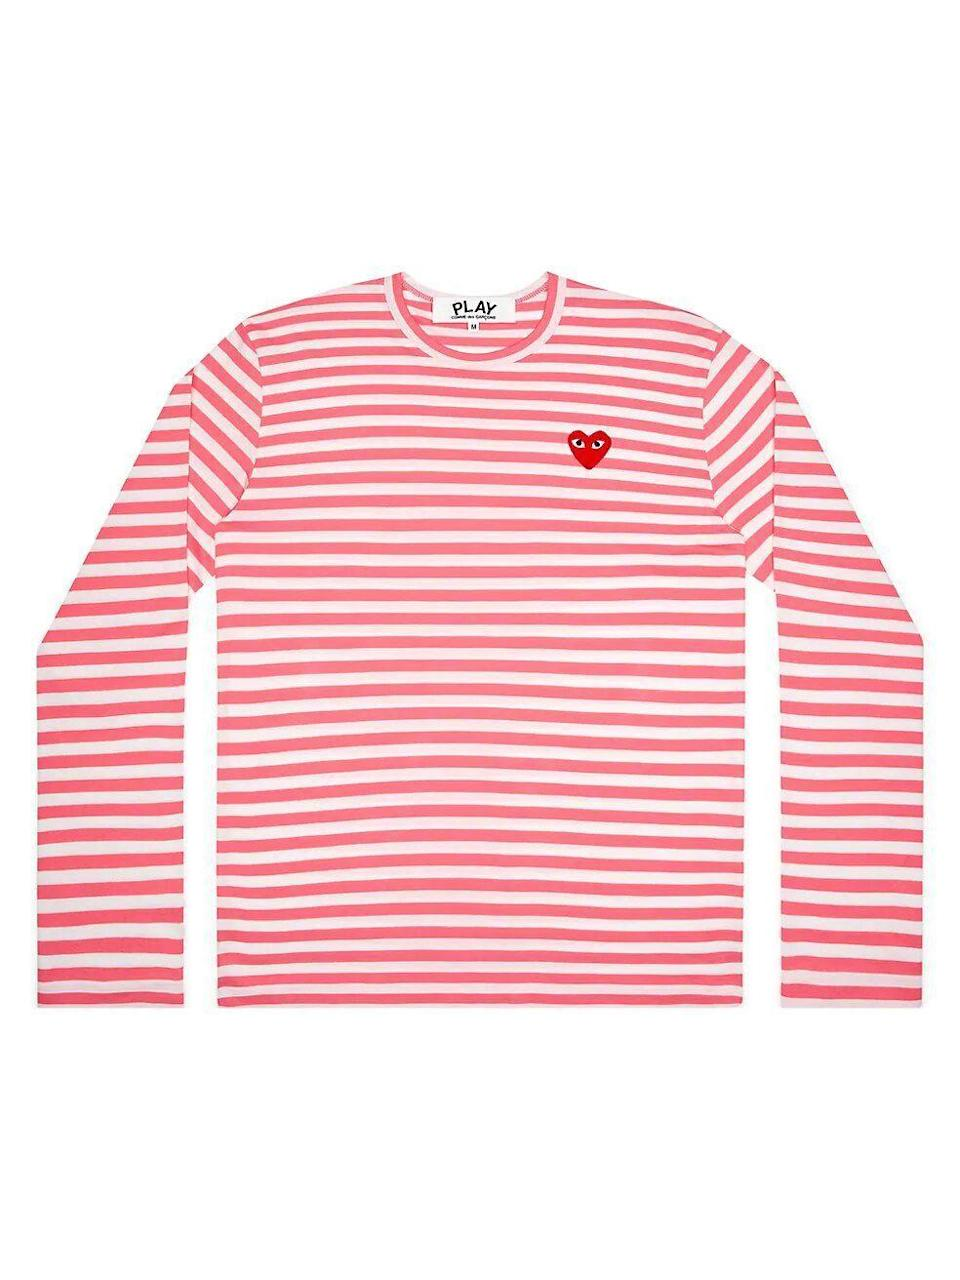 "<p><strong>Comme des Garcons Play</strong></p><p>saksfifthavenue.com</p><p><strong>$139.00</strong></p><p><a href=""https://go.redirectingat.com?id=74968X1596630&url=https%3A%2F%2Fwww.saksfifthavenue.com%2Fproduct%2Fcomme-des-garcons-play-striped-long-sleeve-shirt-0400012706854.html%3Fdwvar_0400012706854_color%3DPINK&sref=https%3A%2F%2Fwww.townandcountrymag.com%2Fstyle%2Ffashion-trends%2Fg35229634%2Fbarneys-at-saks-launch%2F"" rel=""nofollow noopener"" target=""_blank"" data-ylk=""slk:Shop Now"" class=""link rapid-noclick-resp"">Shop Now</a></p>"